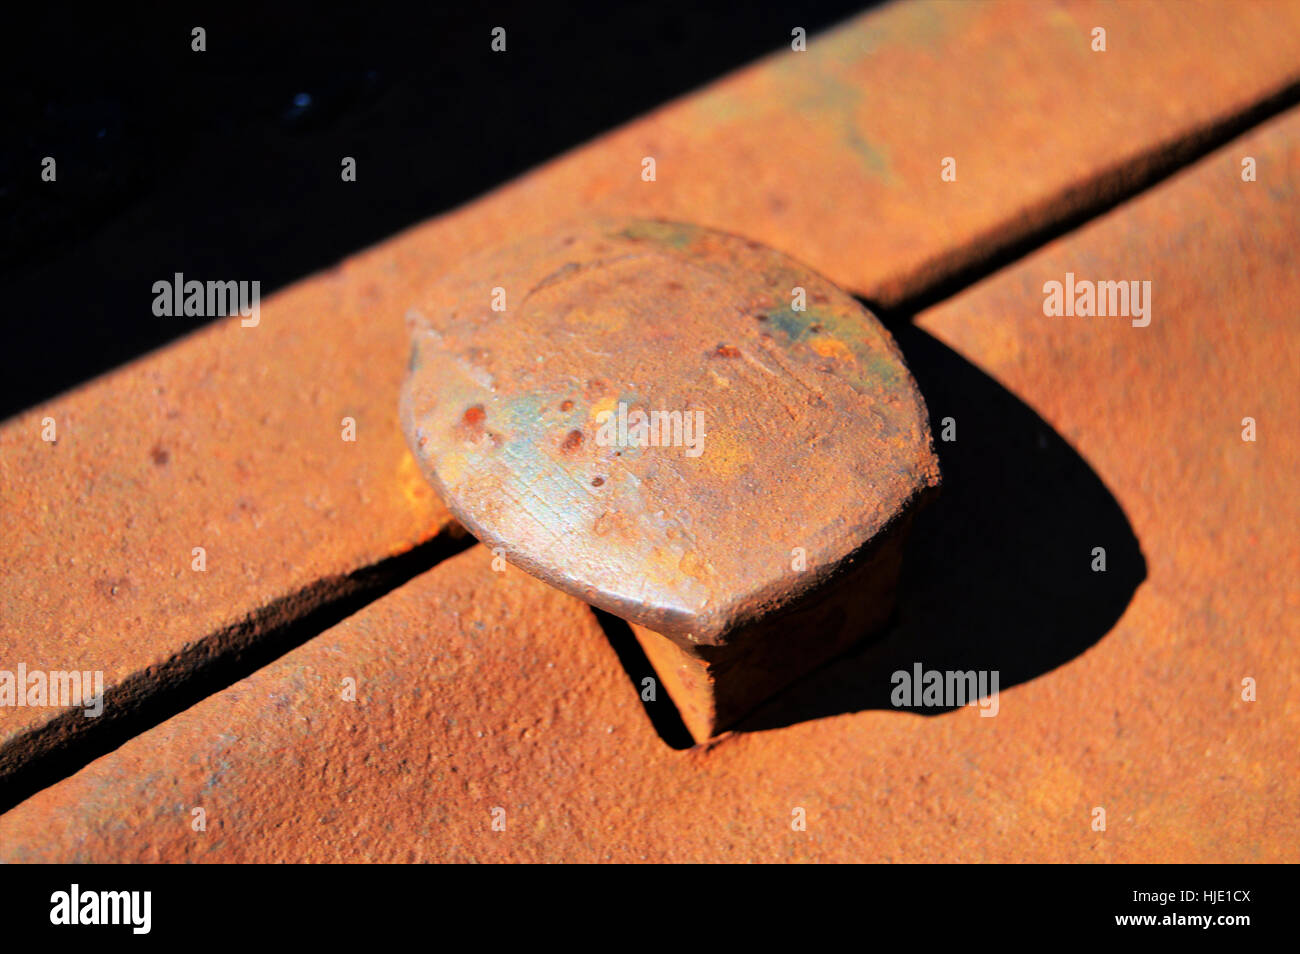 Closeup of an rusty iron railroad nail in its holder. Concept: railroads - Stock Image